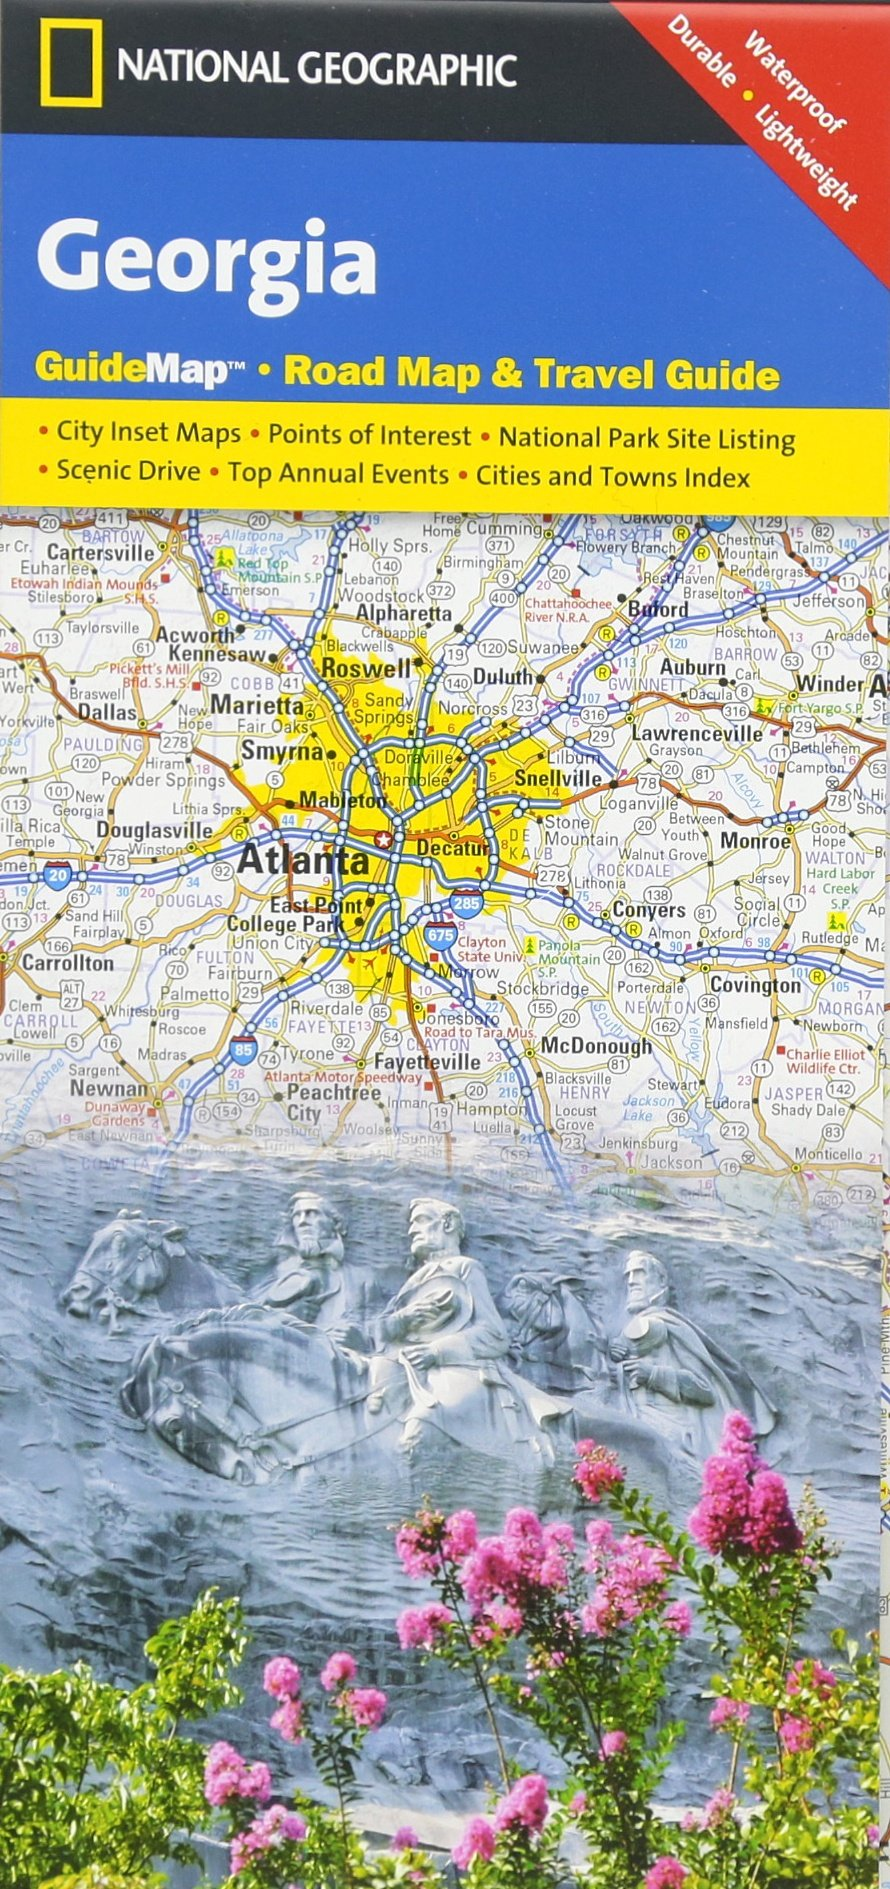 Georgia National Geographic Guide Map National Geographic Maps - Road map georgia